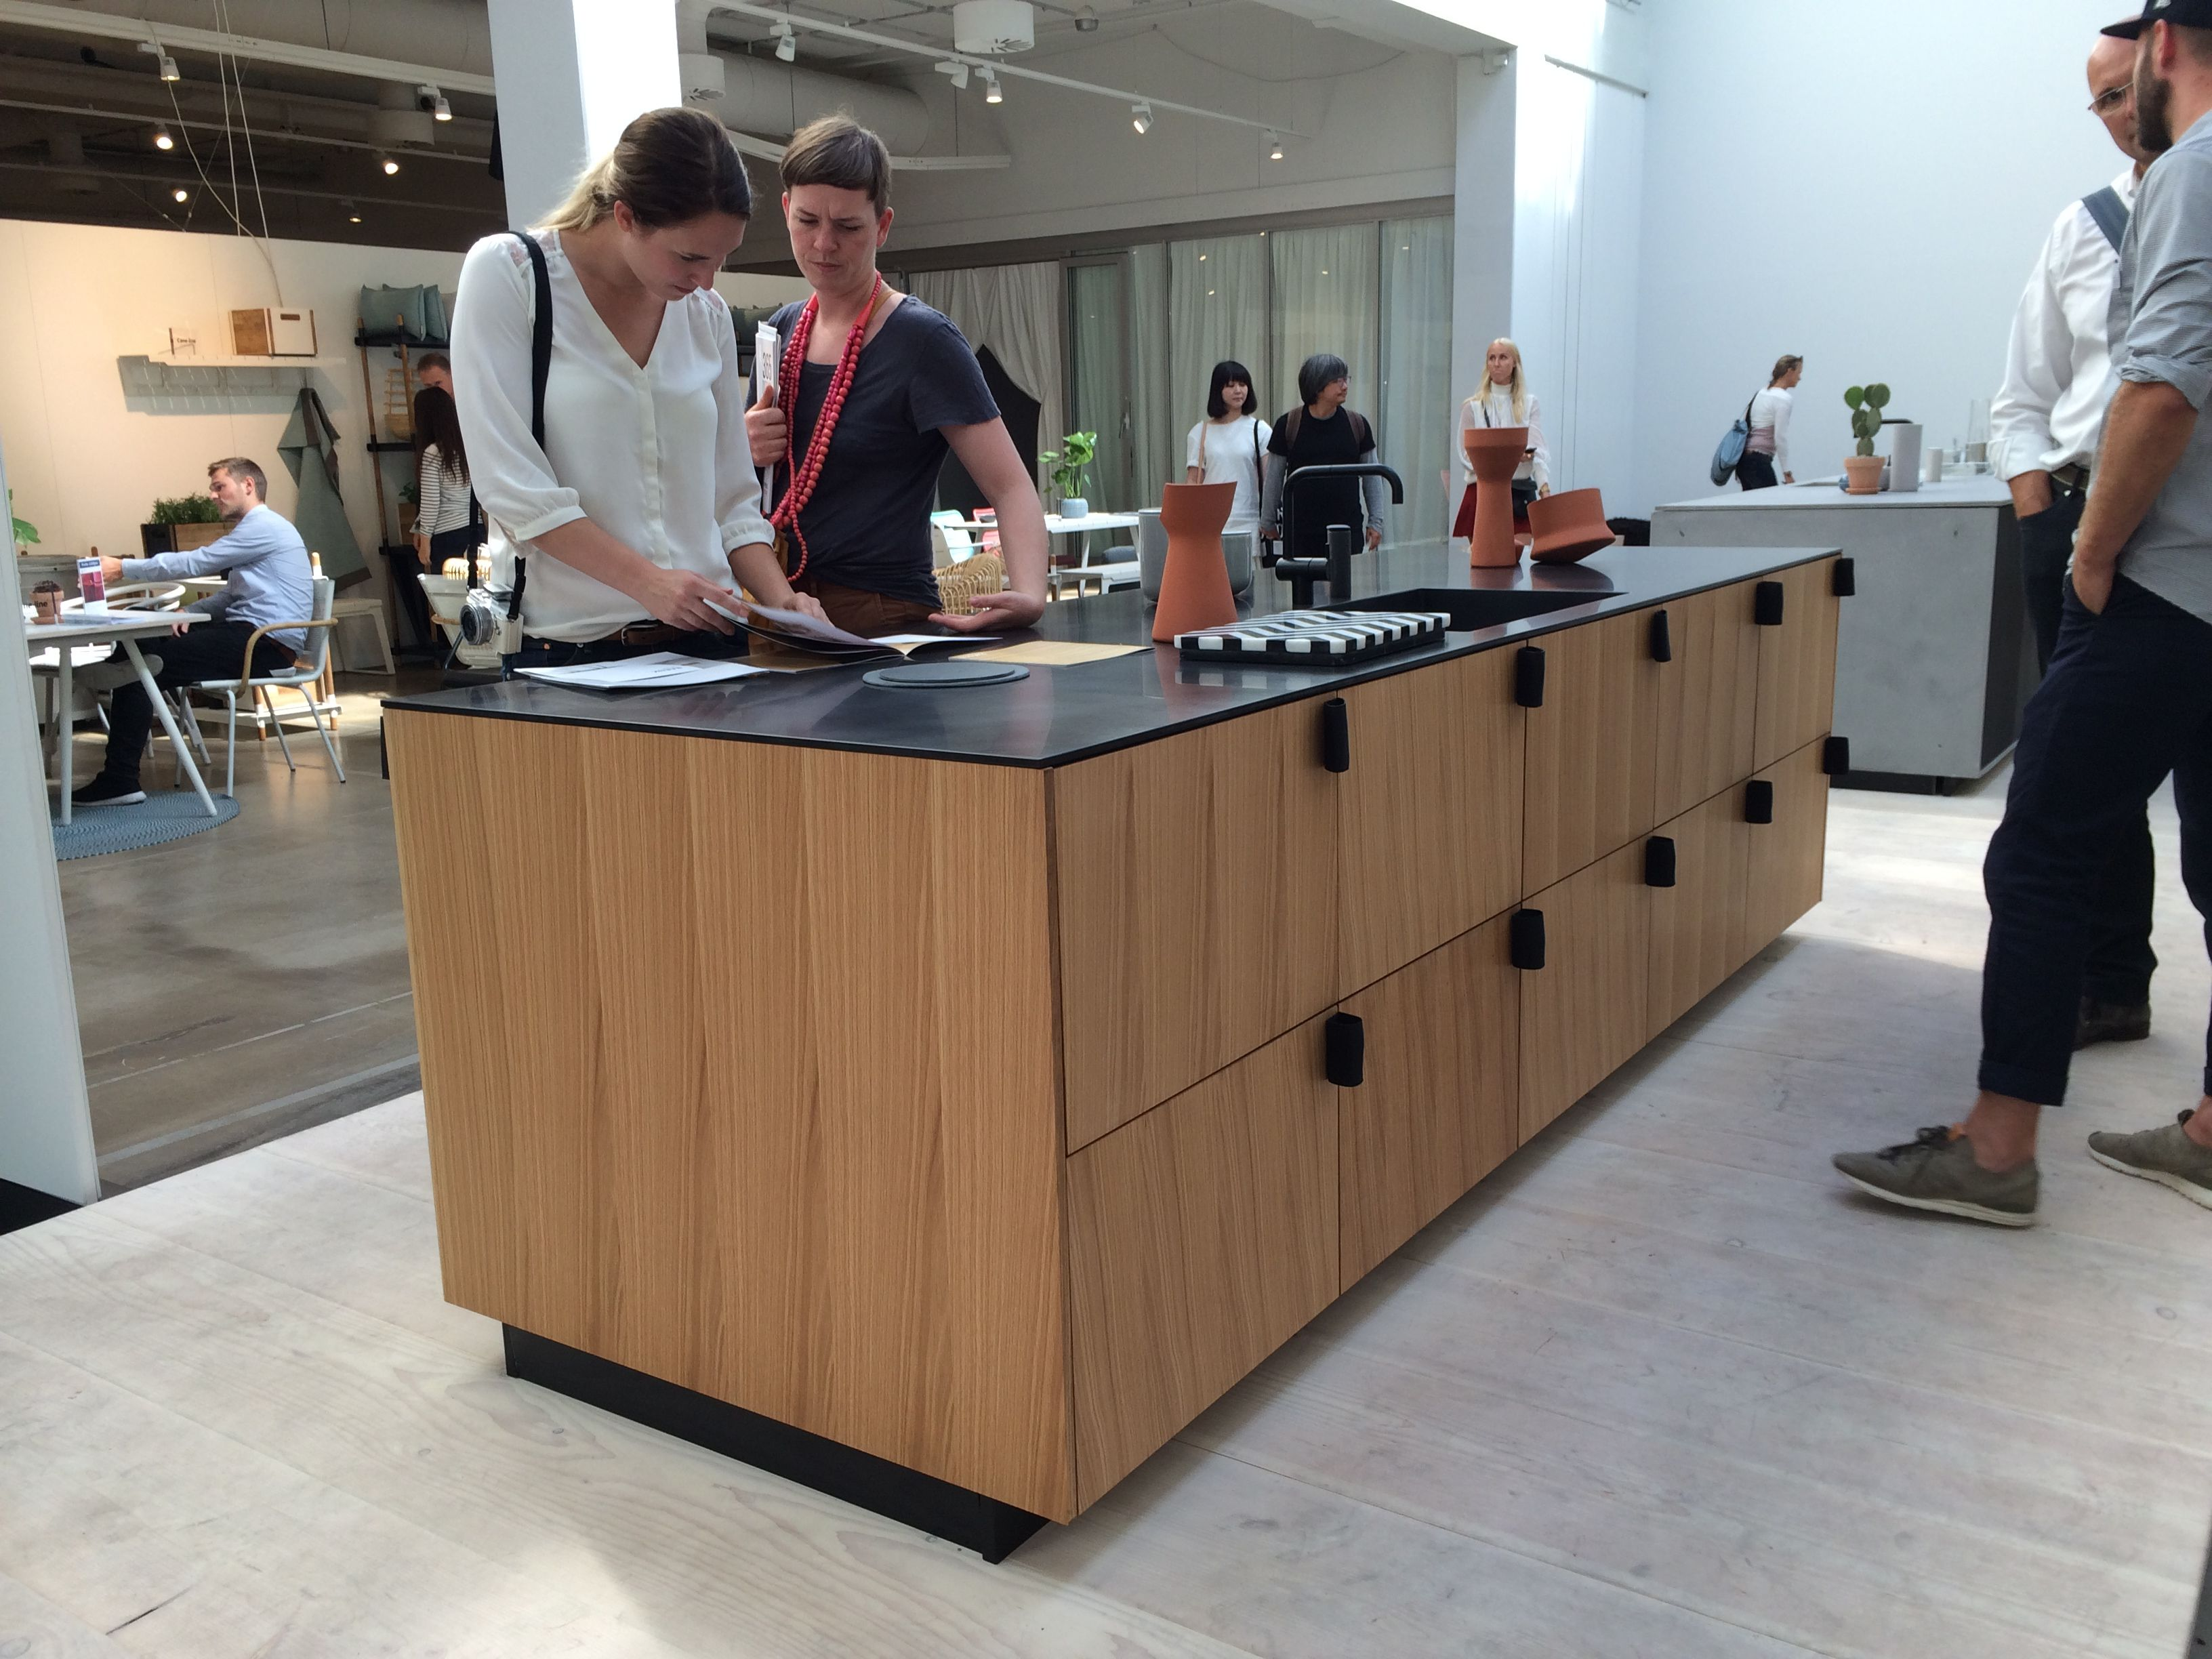 Reform kitchen design by big bjarke ingels group for Innendekoration ikea